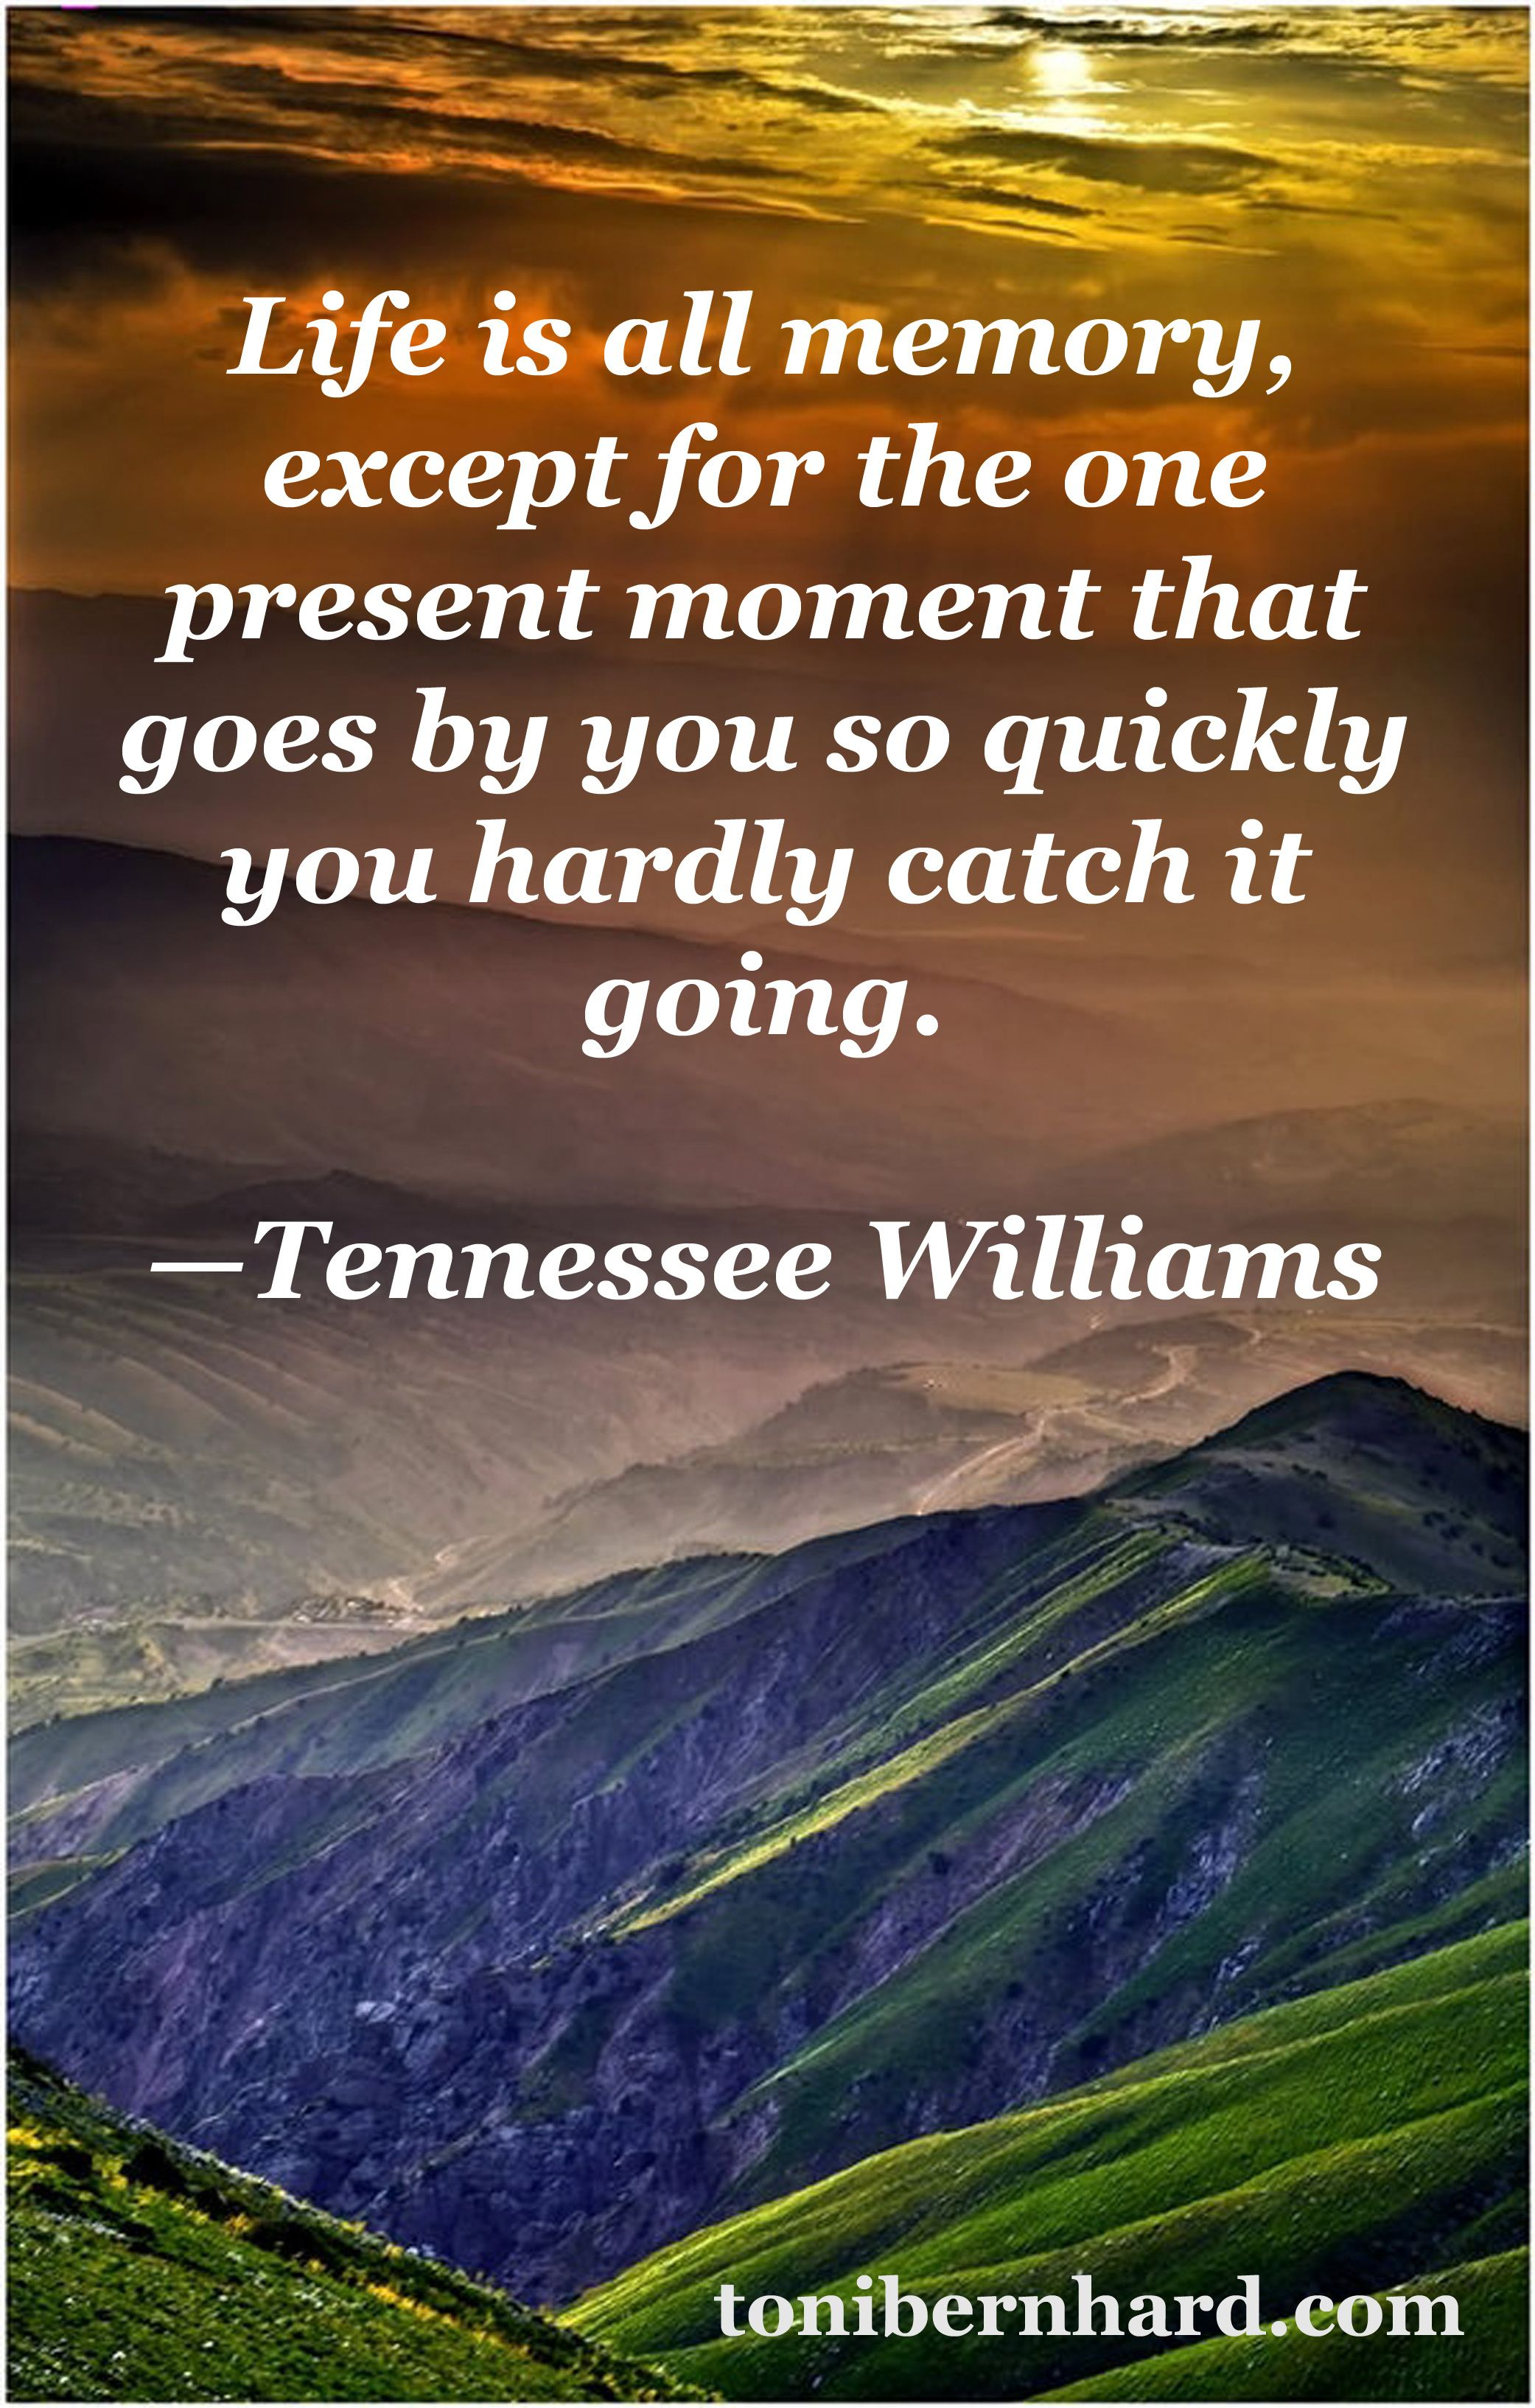 Life is all memory, except for the one present moment that goes by you so quickly you hardly catch it going. Quote by Tennessee Williams